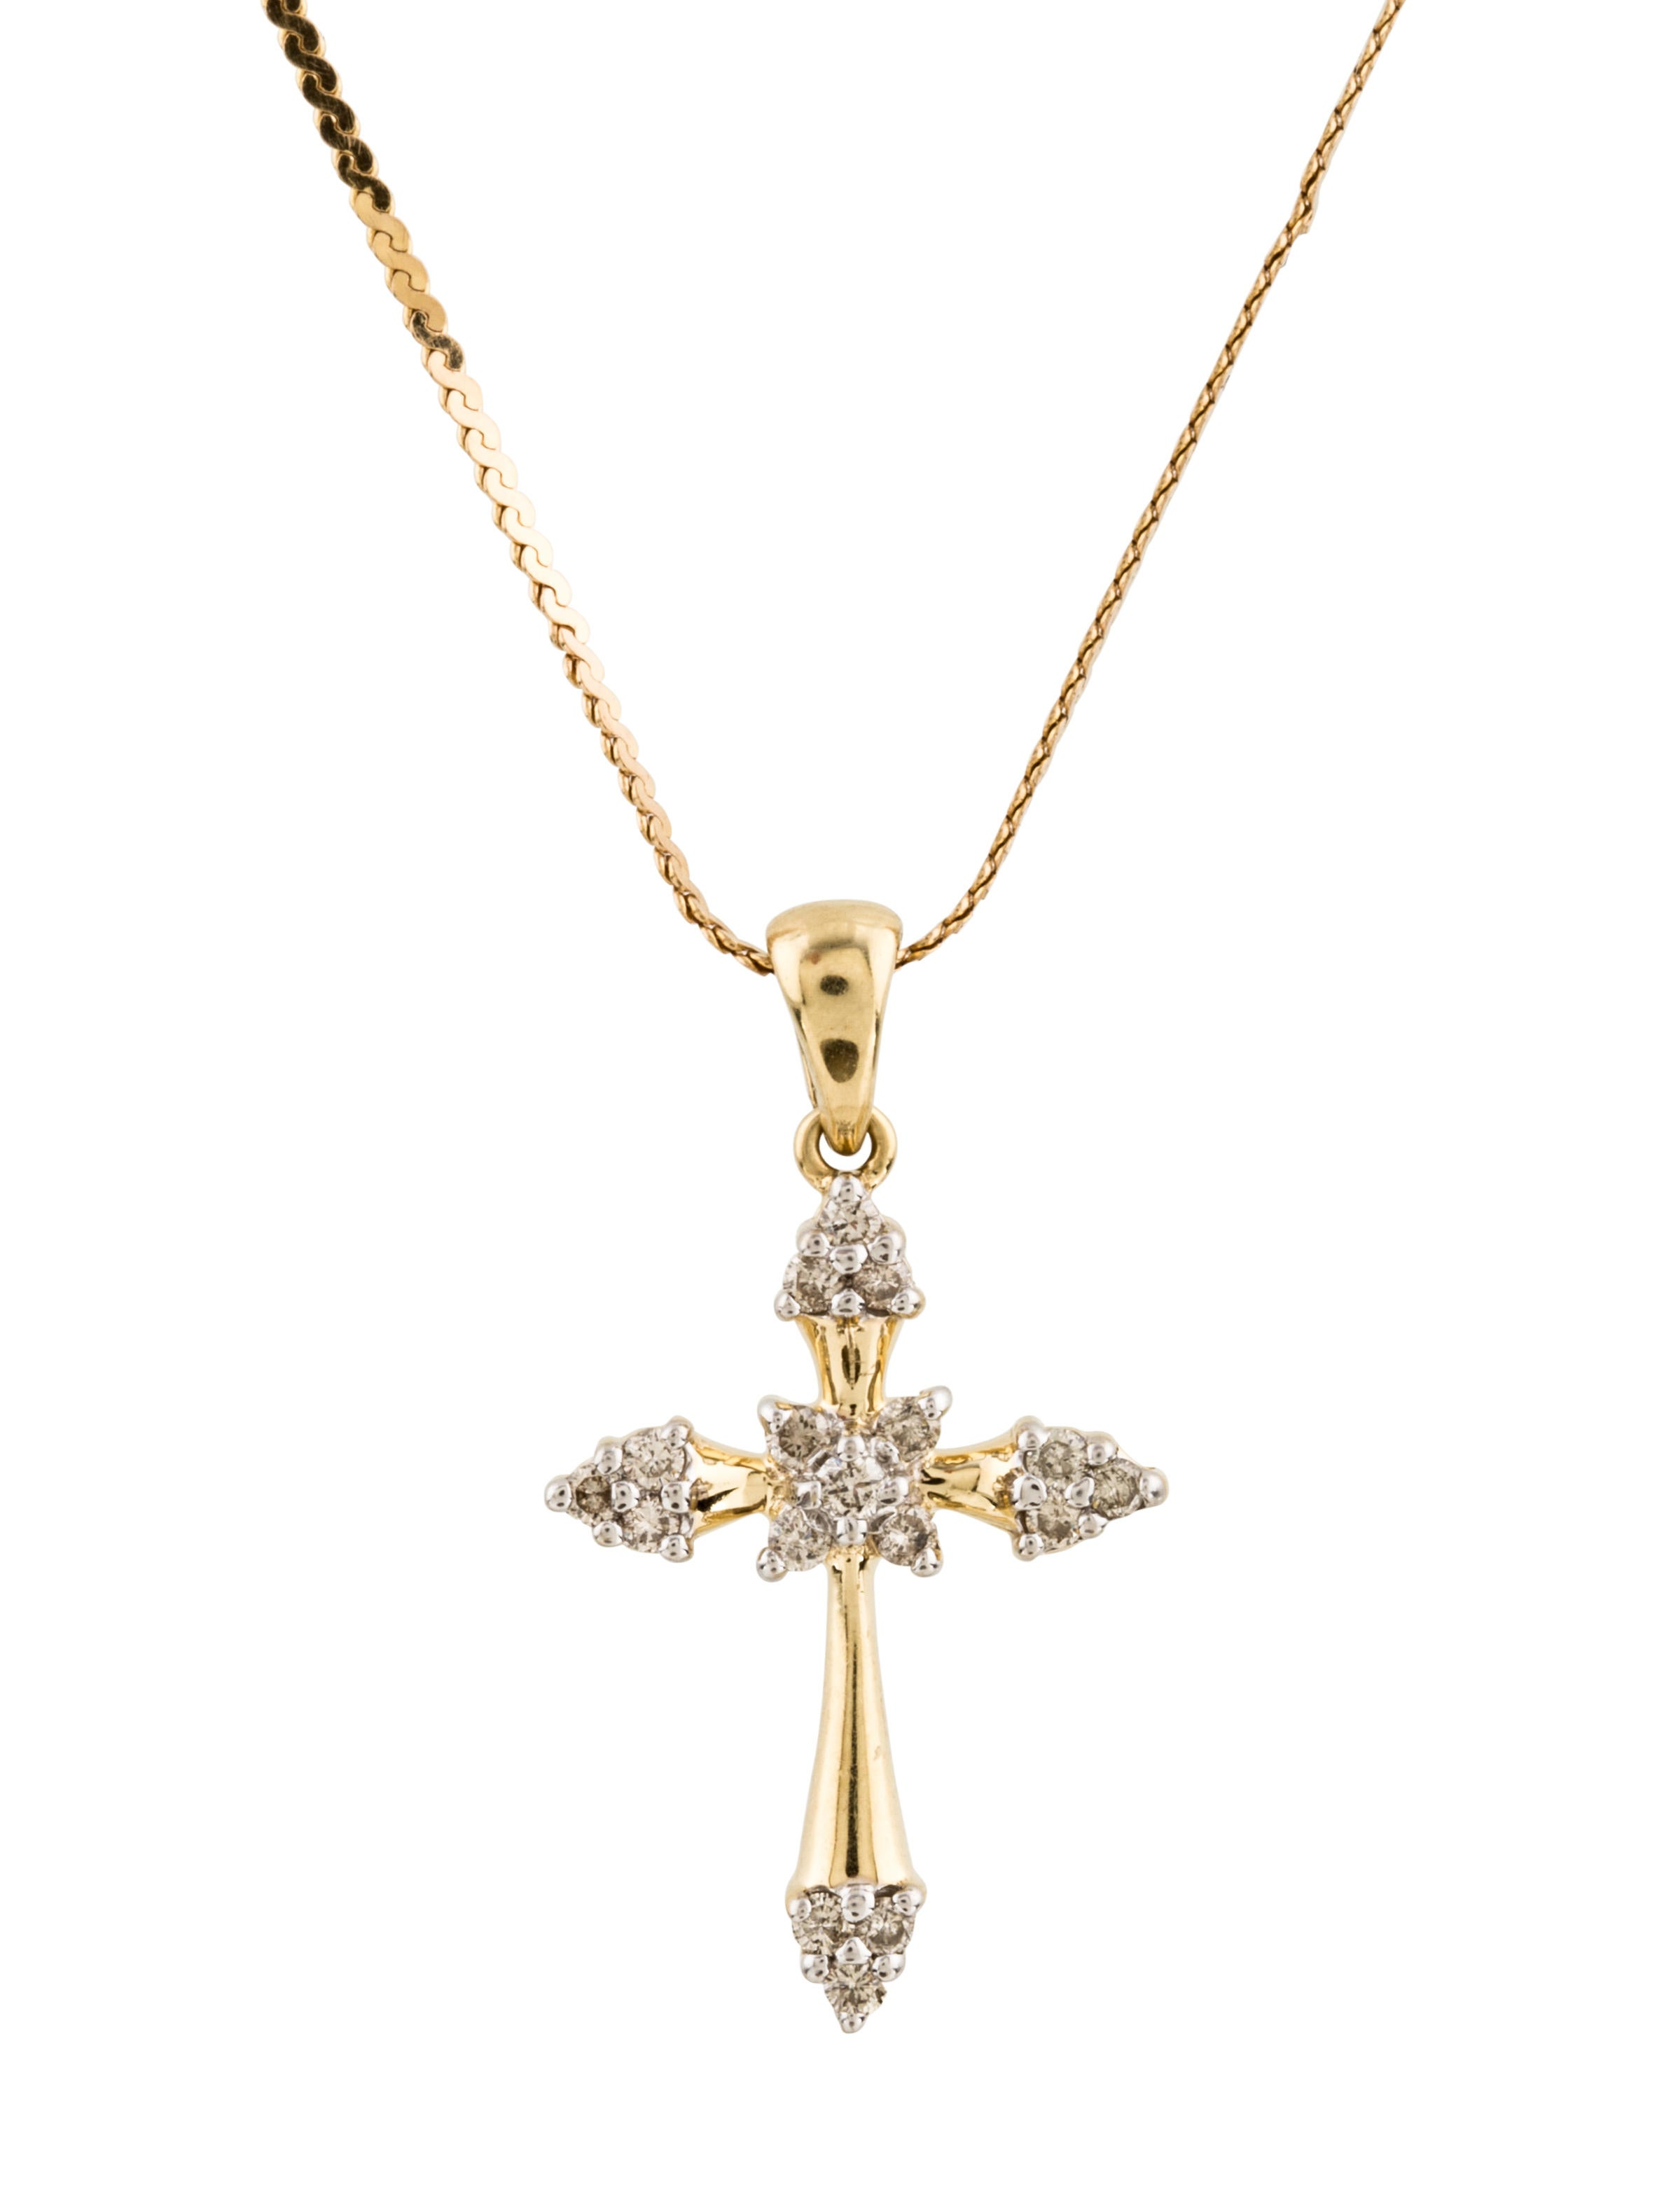 14k diamond cross pendant necklace necklaces. Black Bedroom Furniture Sets. Home Design Ideas